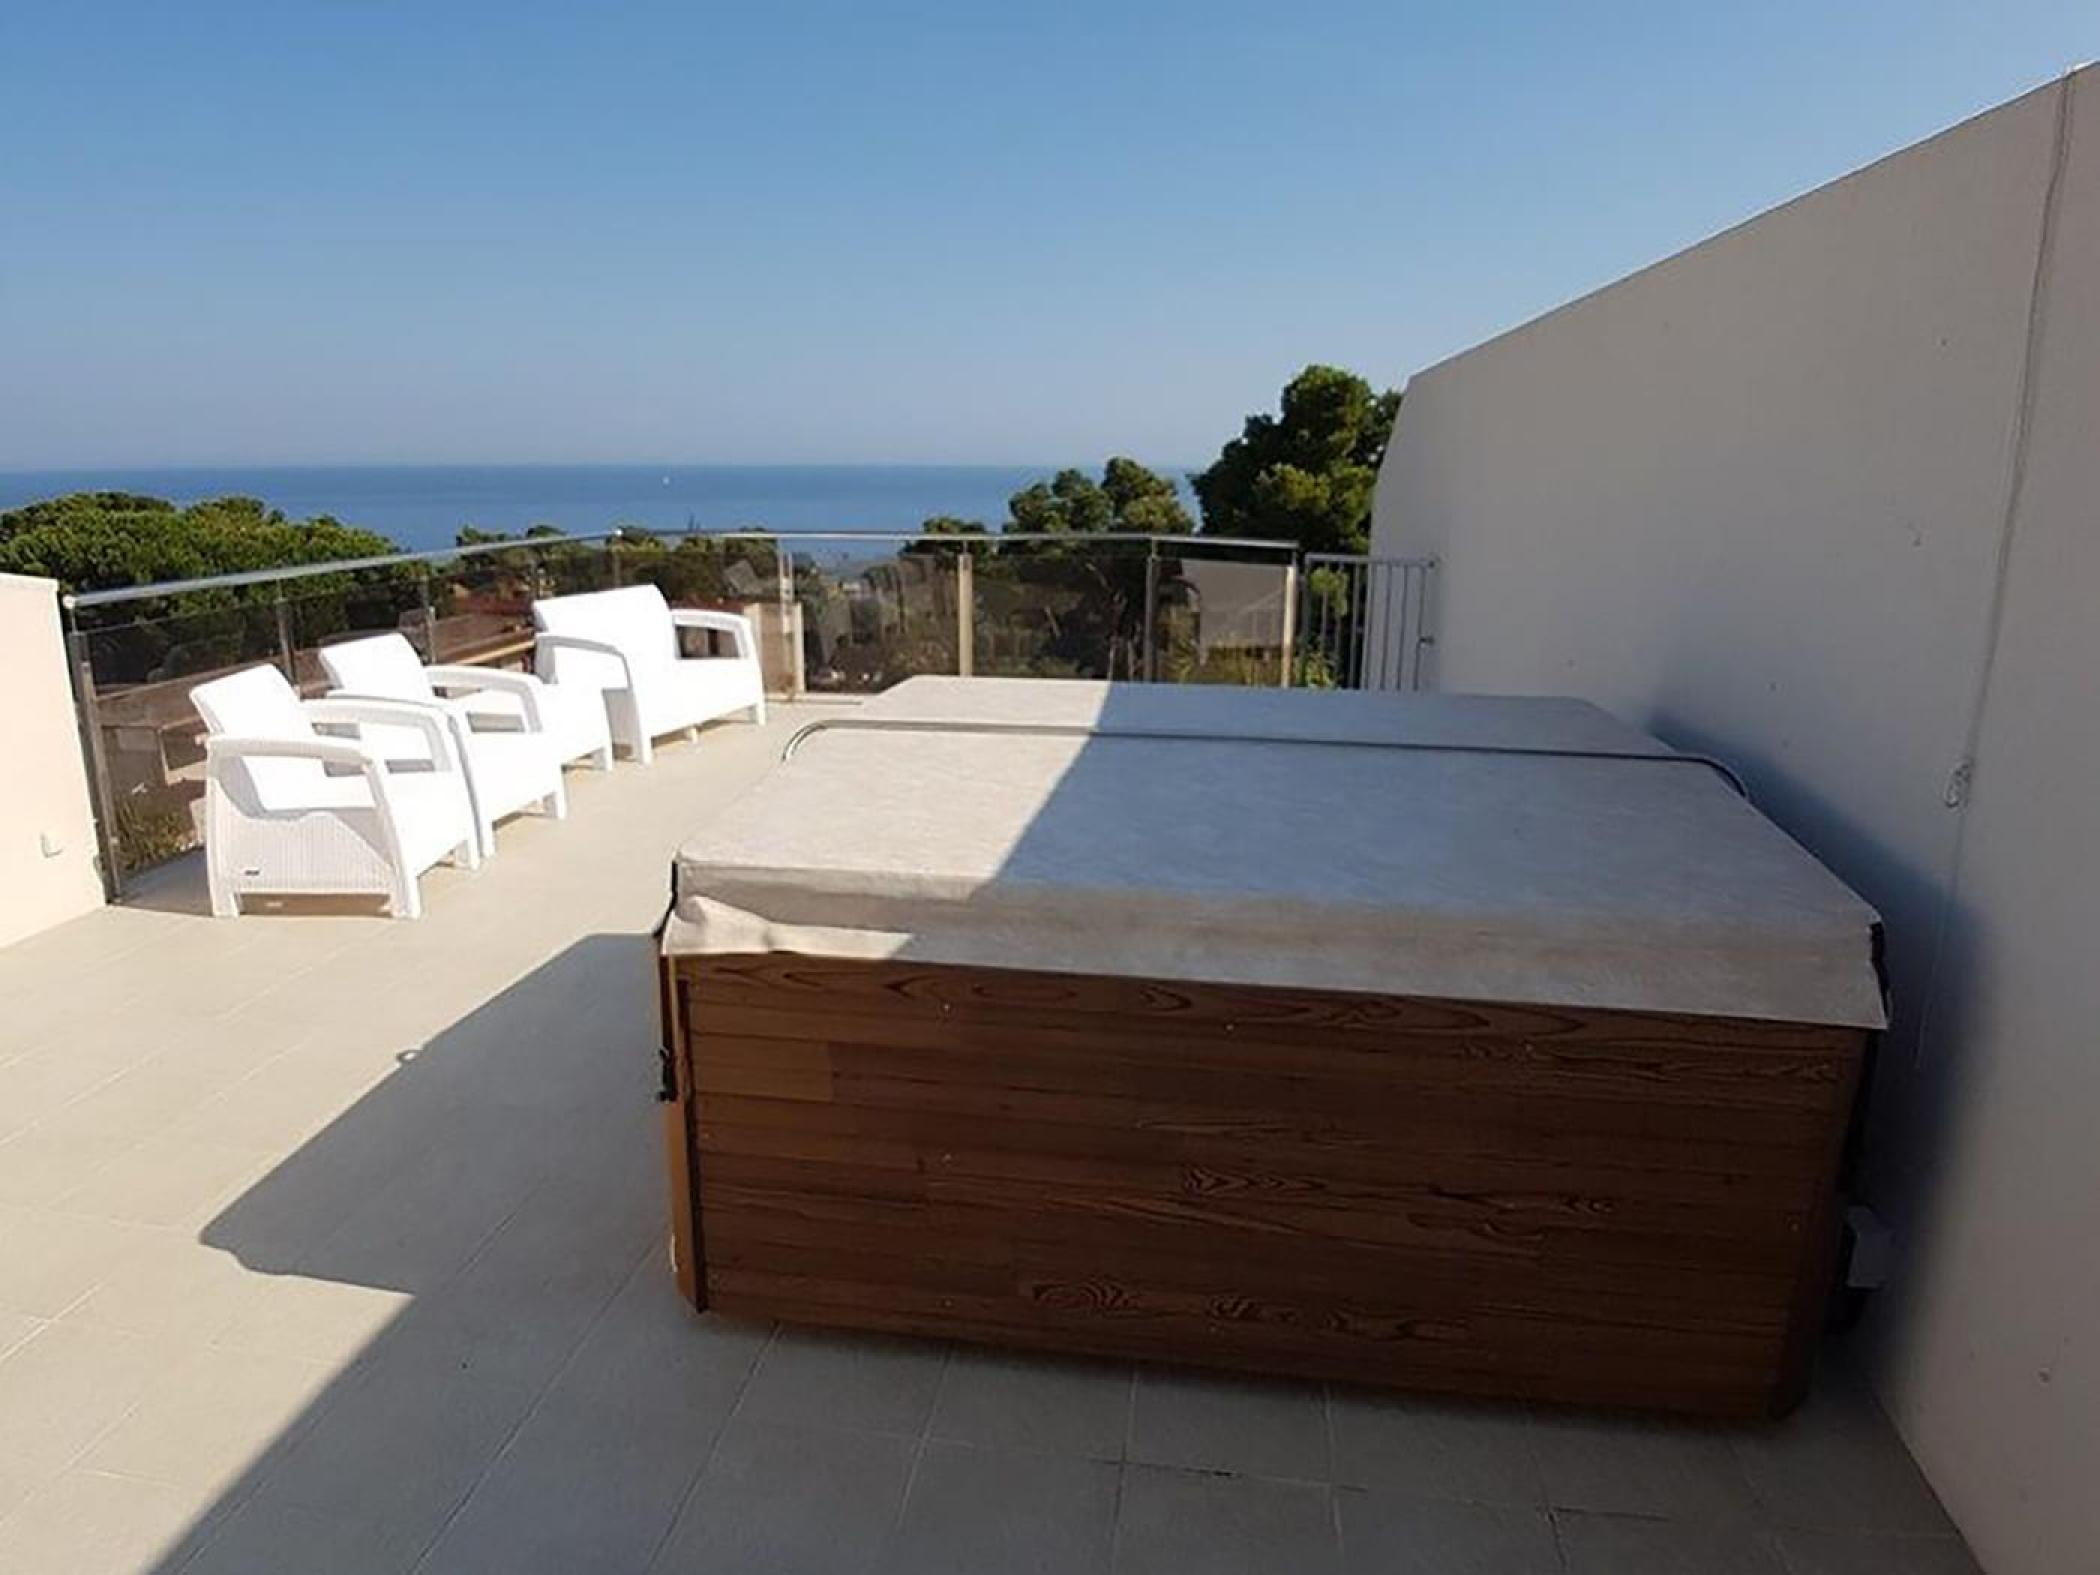 Rent Villa with Swimming pool in Platja d'Aro - Girorooms Travel Calma Holiday Villas jacuzzi 11 - 24